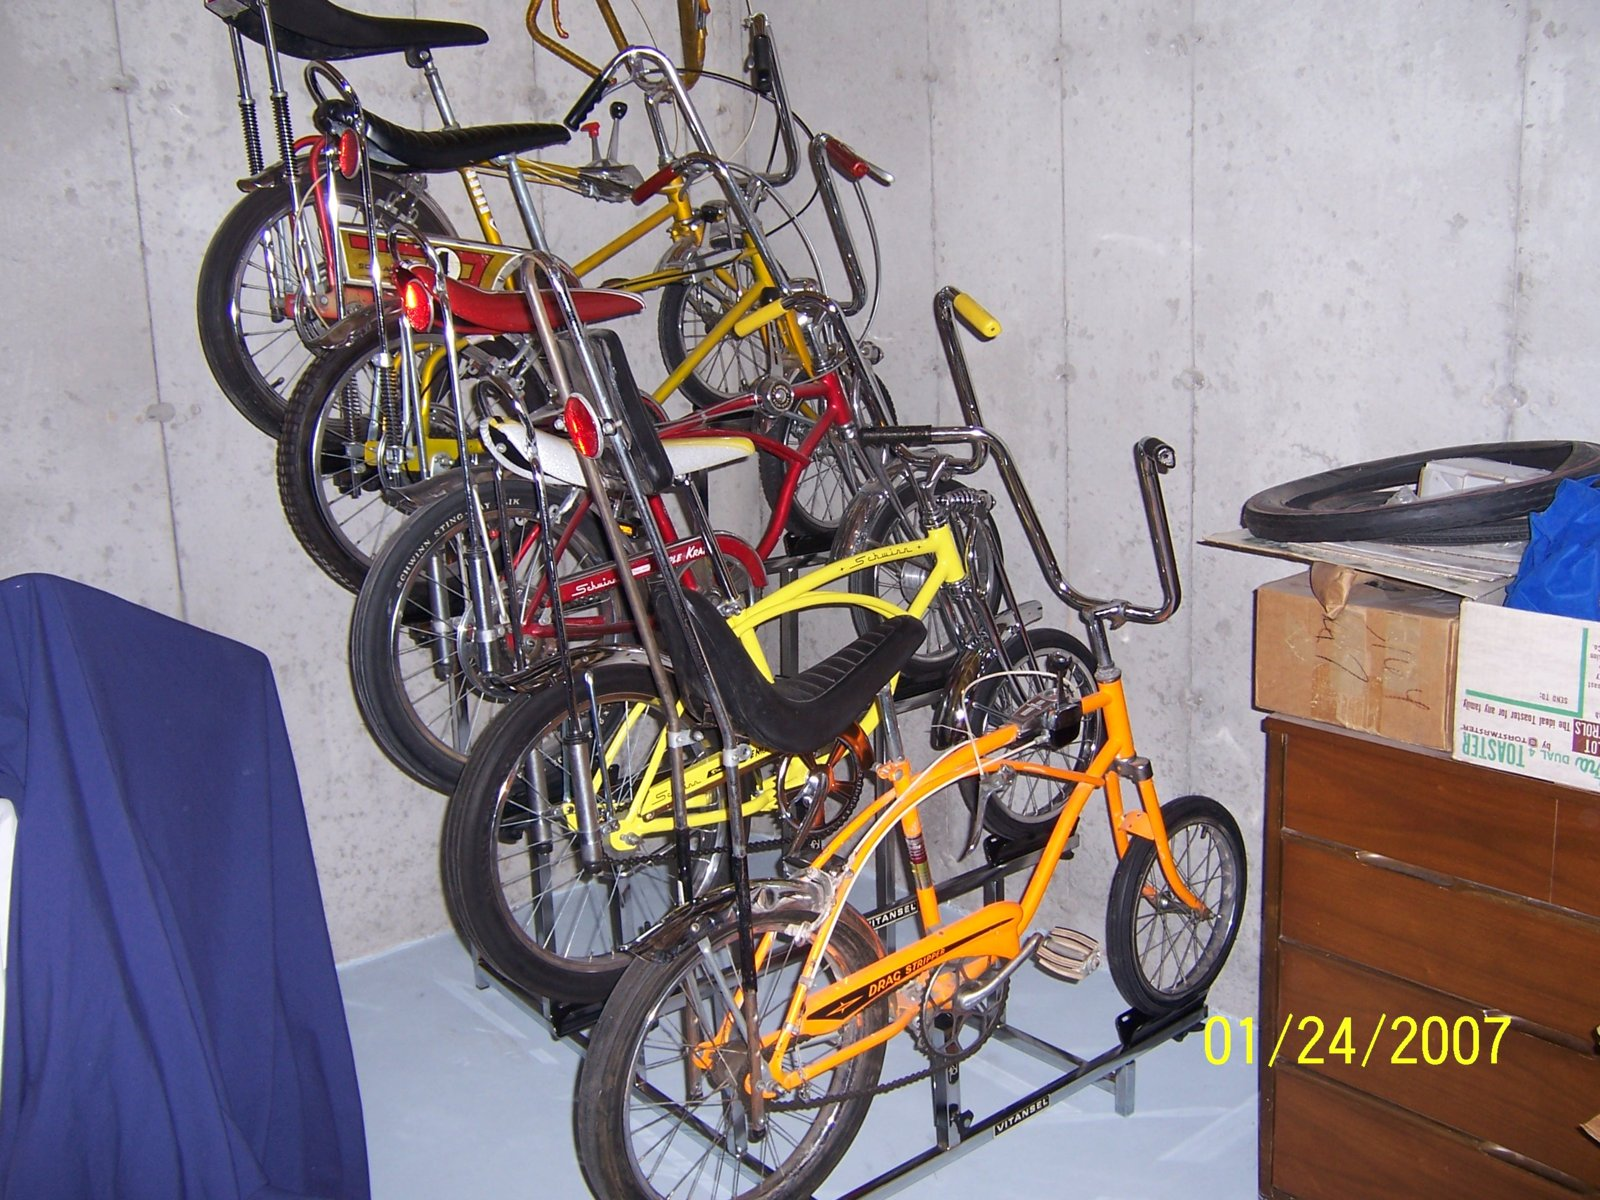 My first musclebikes.jpg